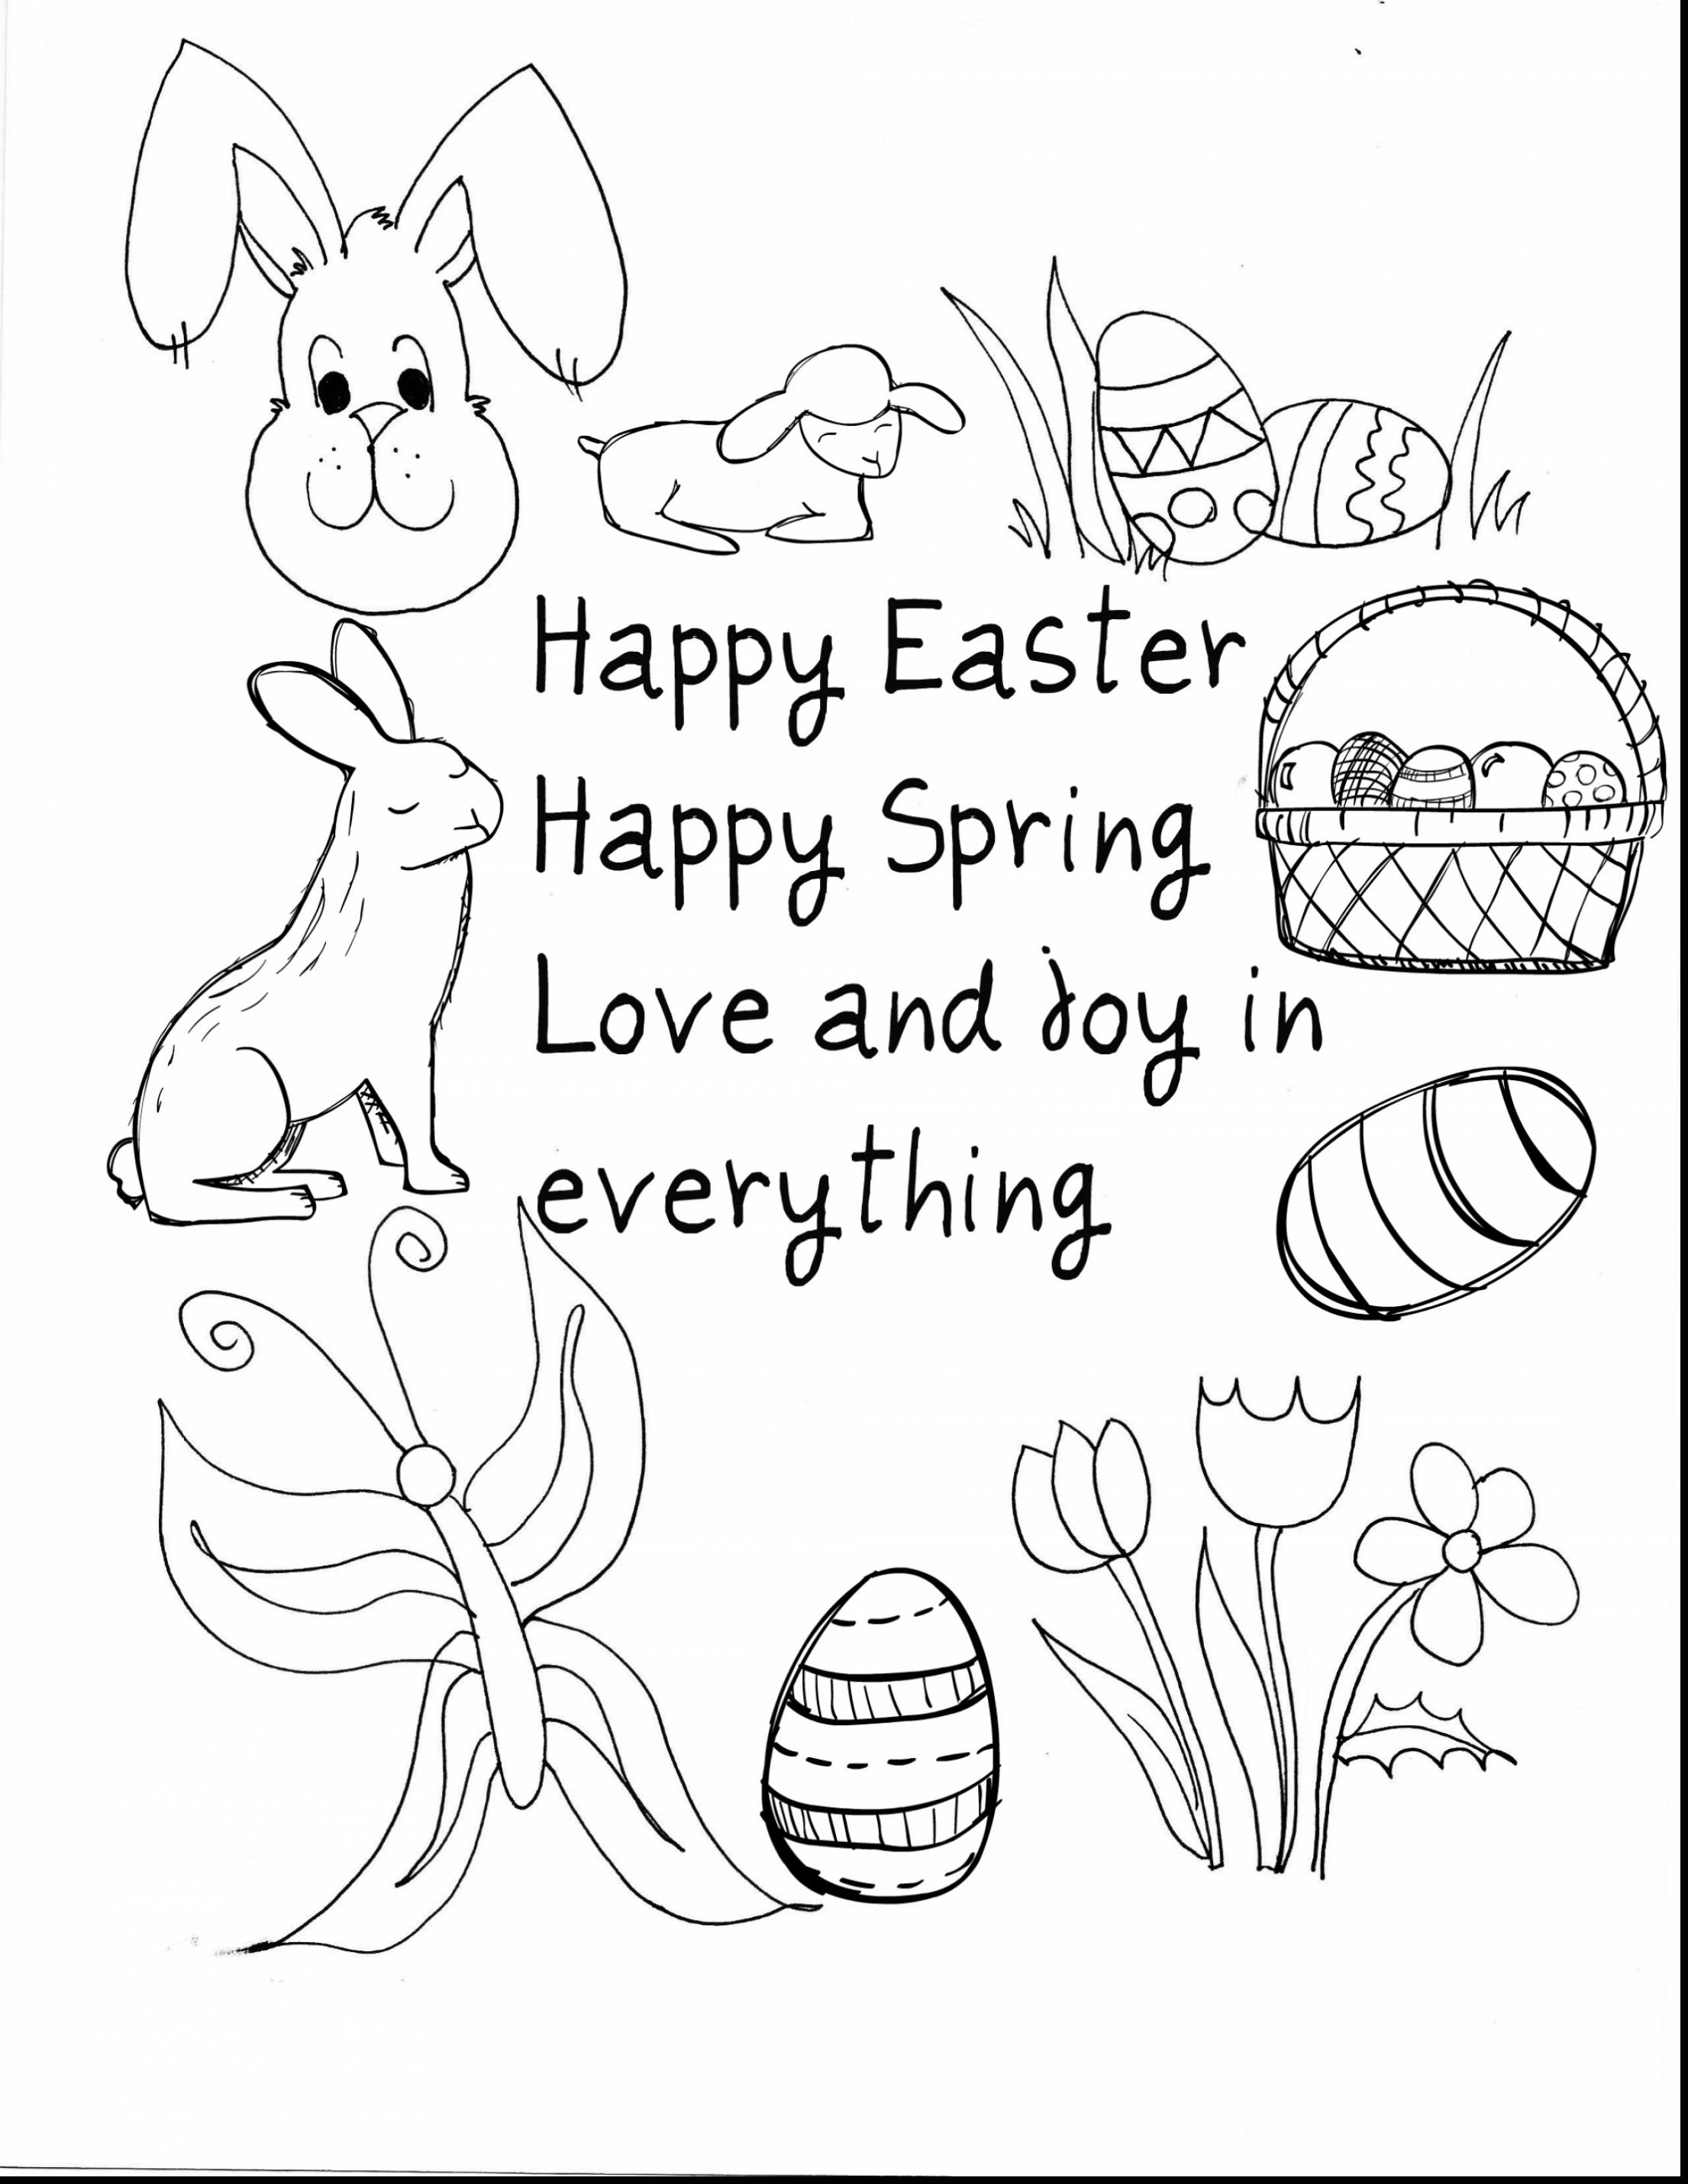 image relating to Christian Easter Coloring Pages Printable Free named Spiritual Easter Coloring Web pages For Preschoolers at